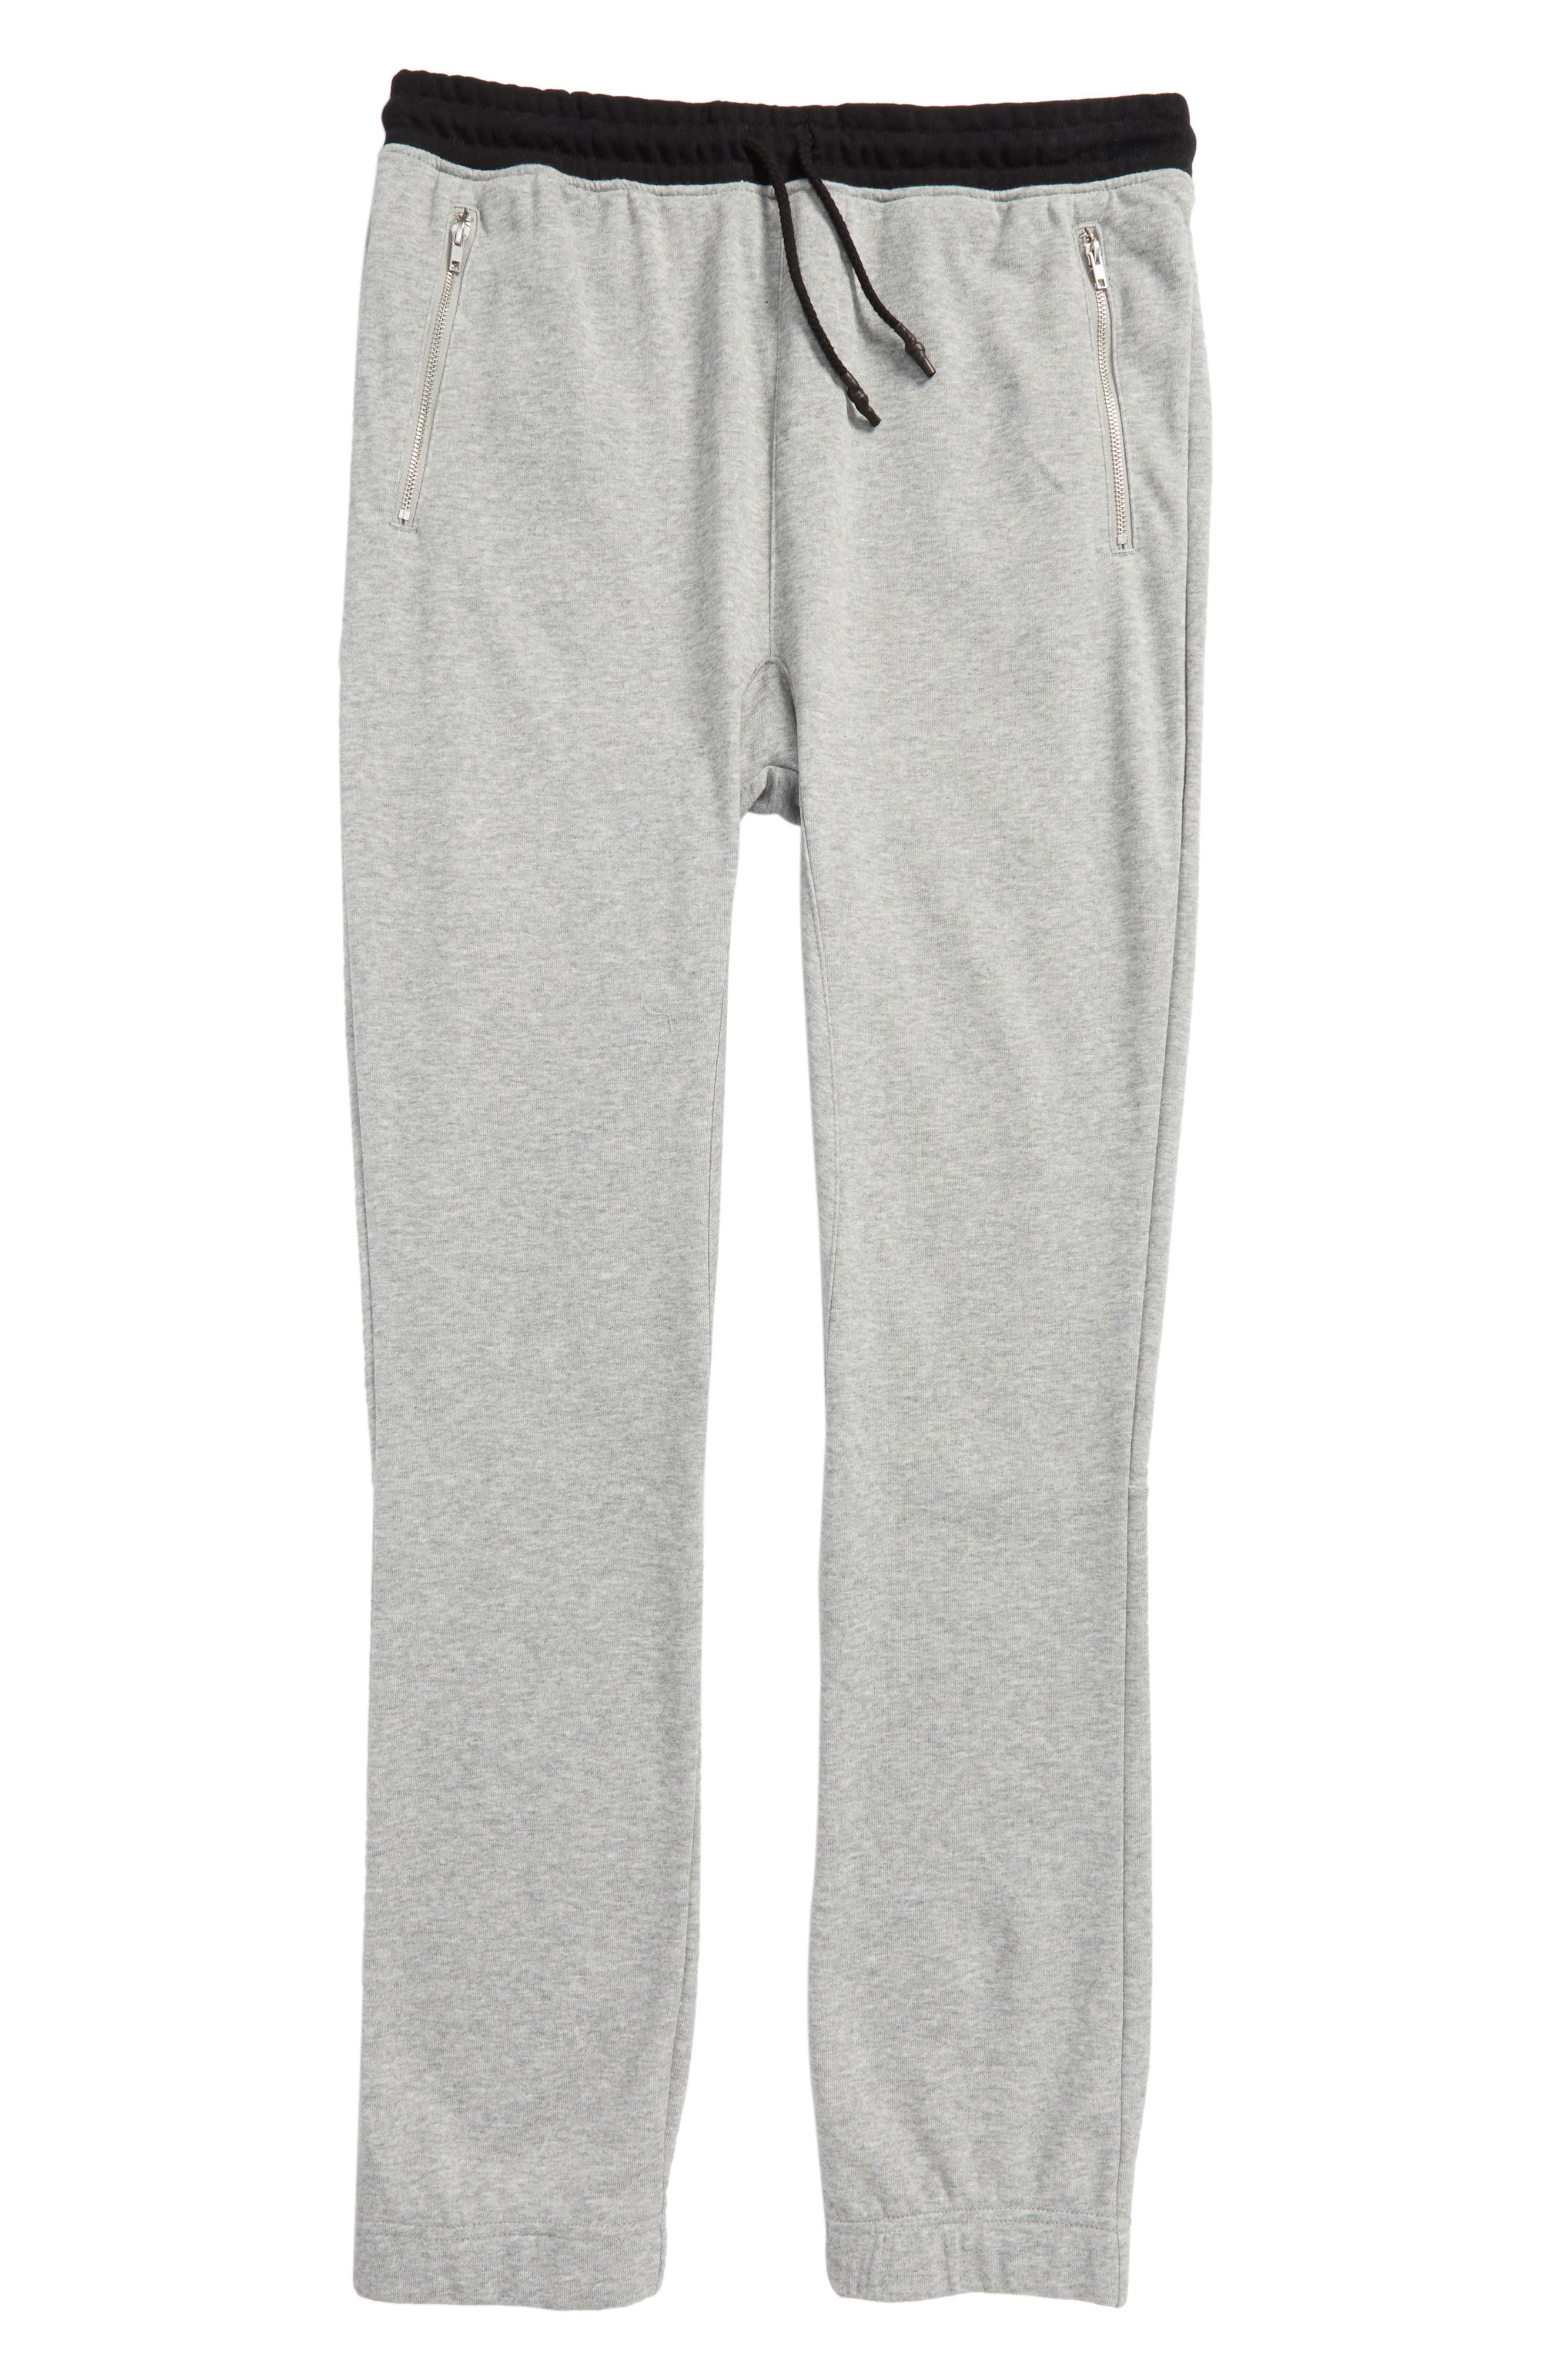 Jogger Pants,                         Main,                         color, Heather Grey/ Black